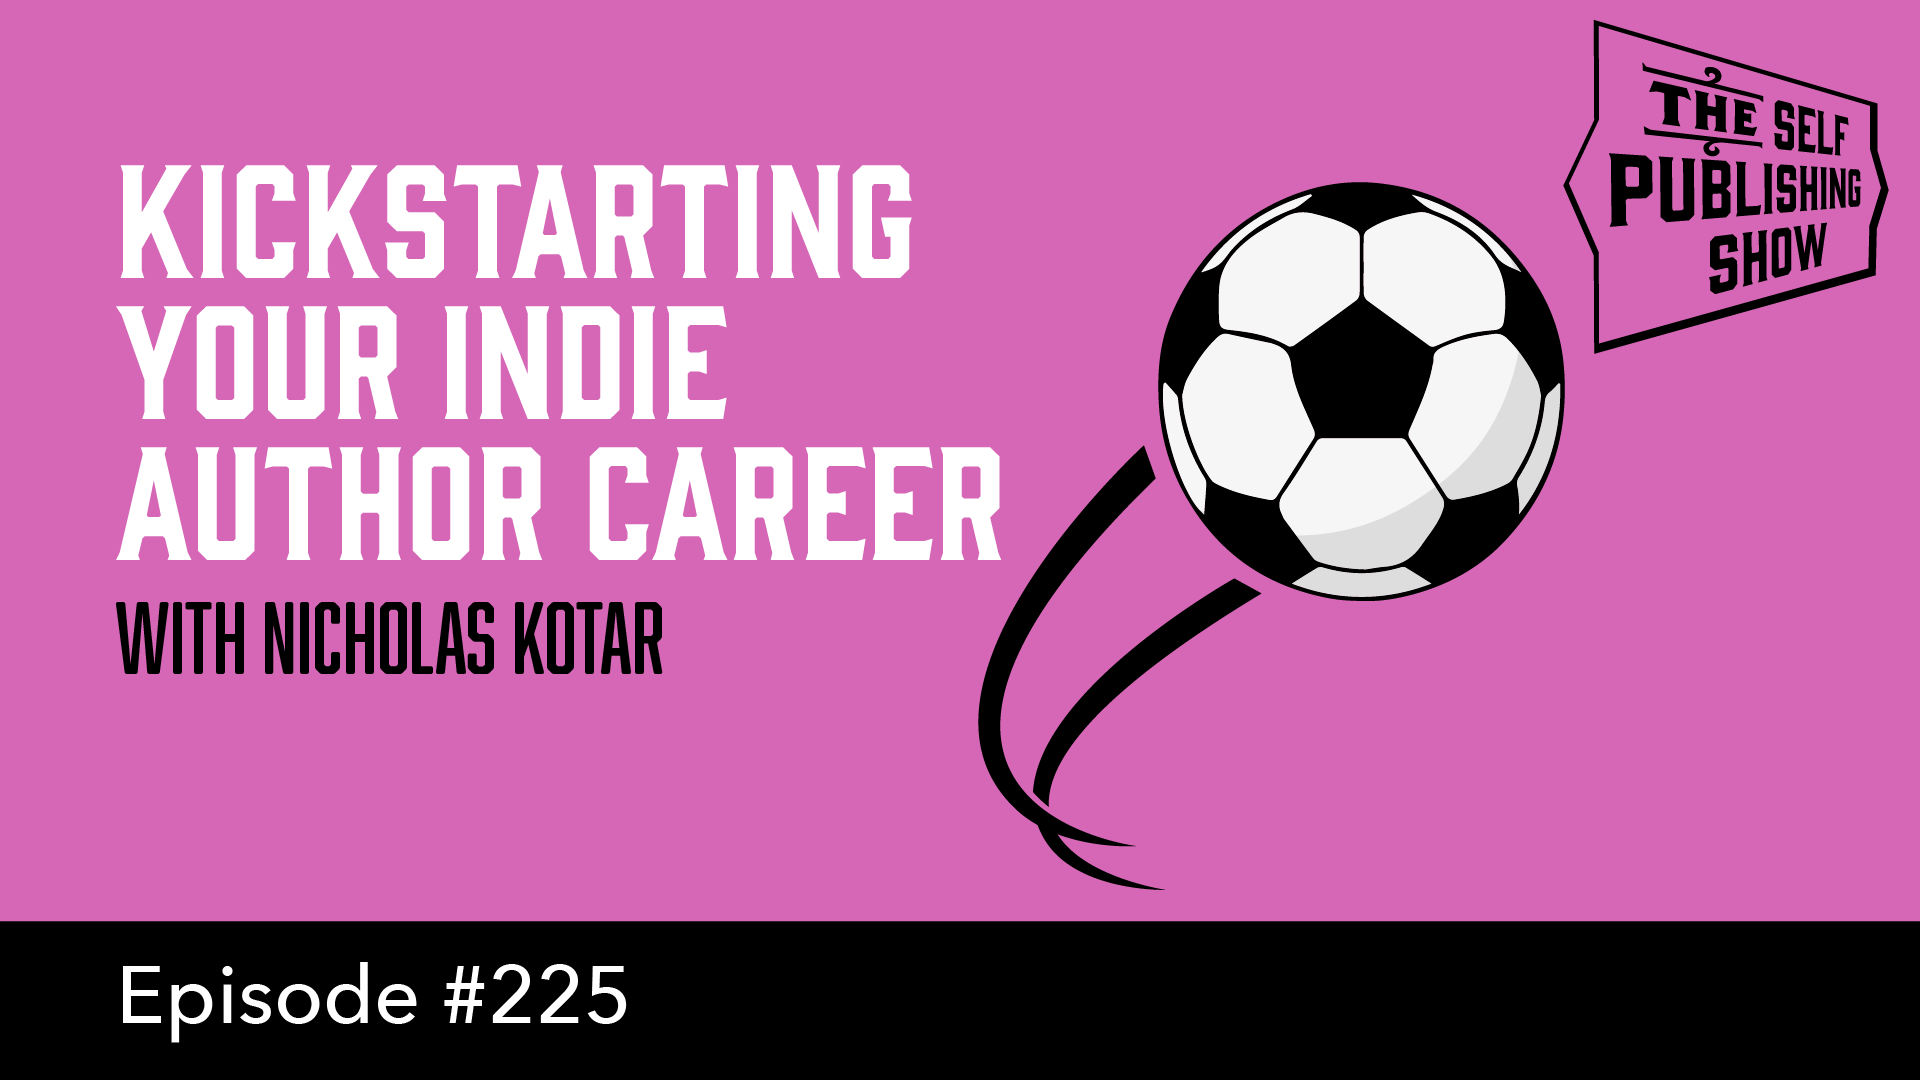 SPS-225: Kickstarting Your Indie Author Career – with Nicholas Kotar